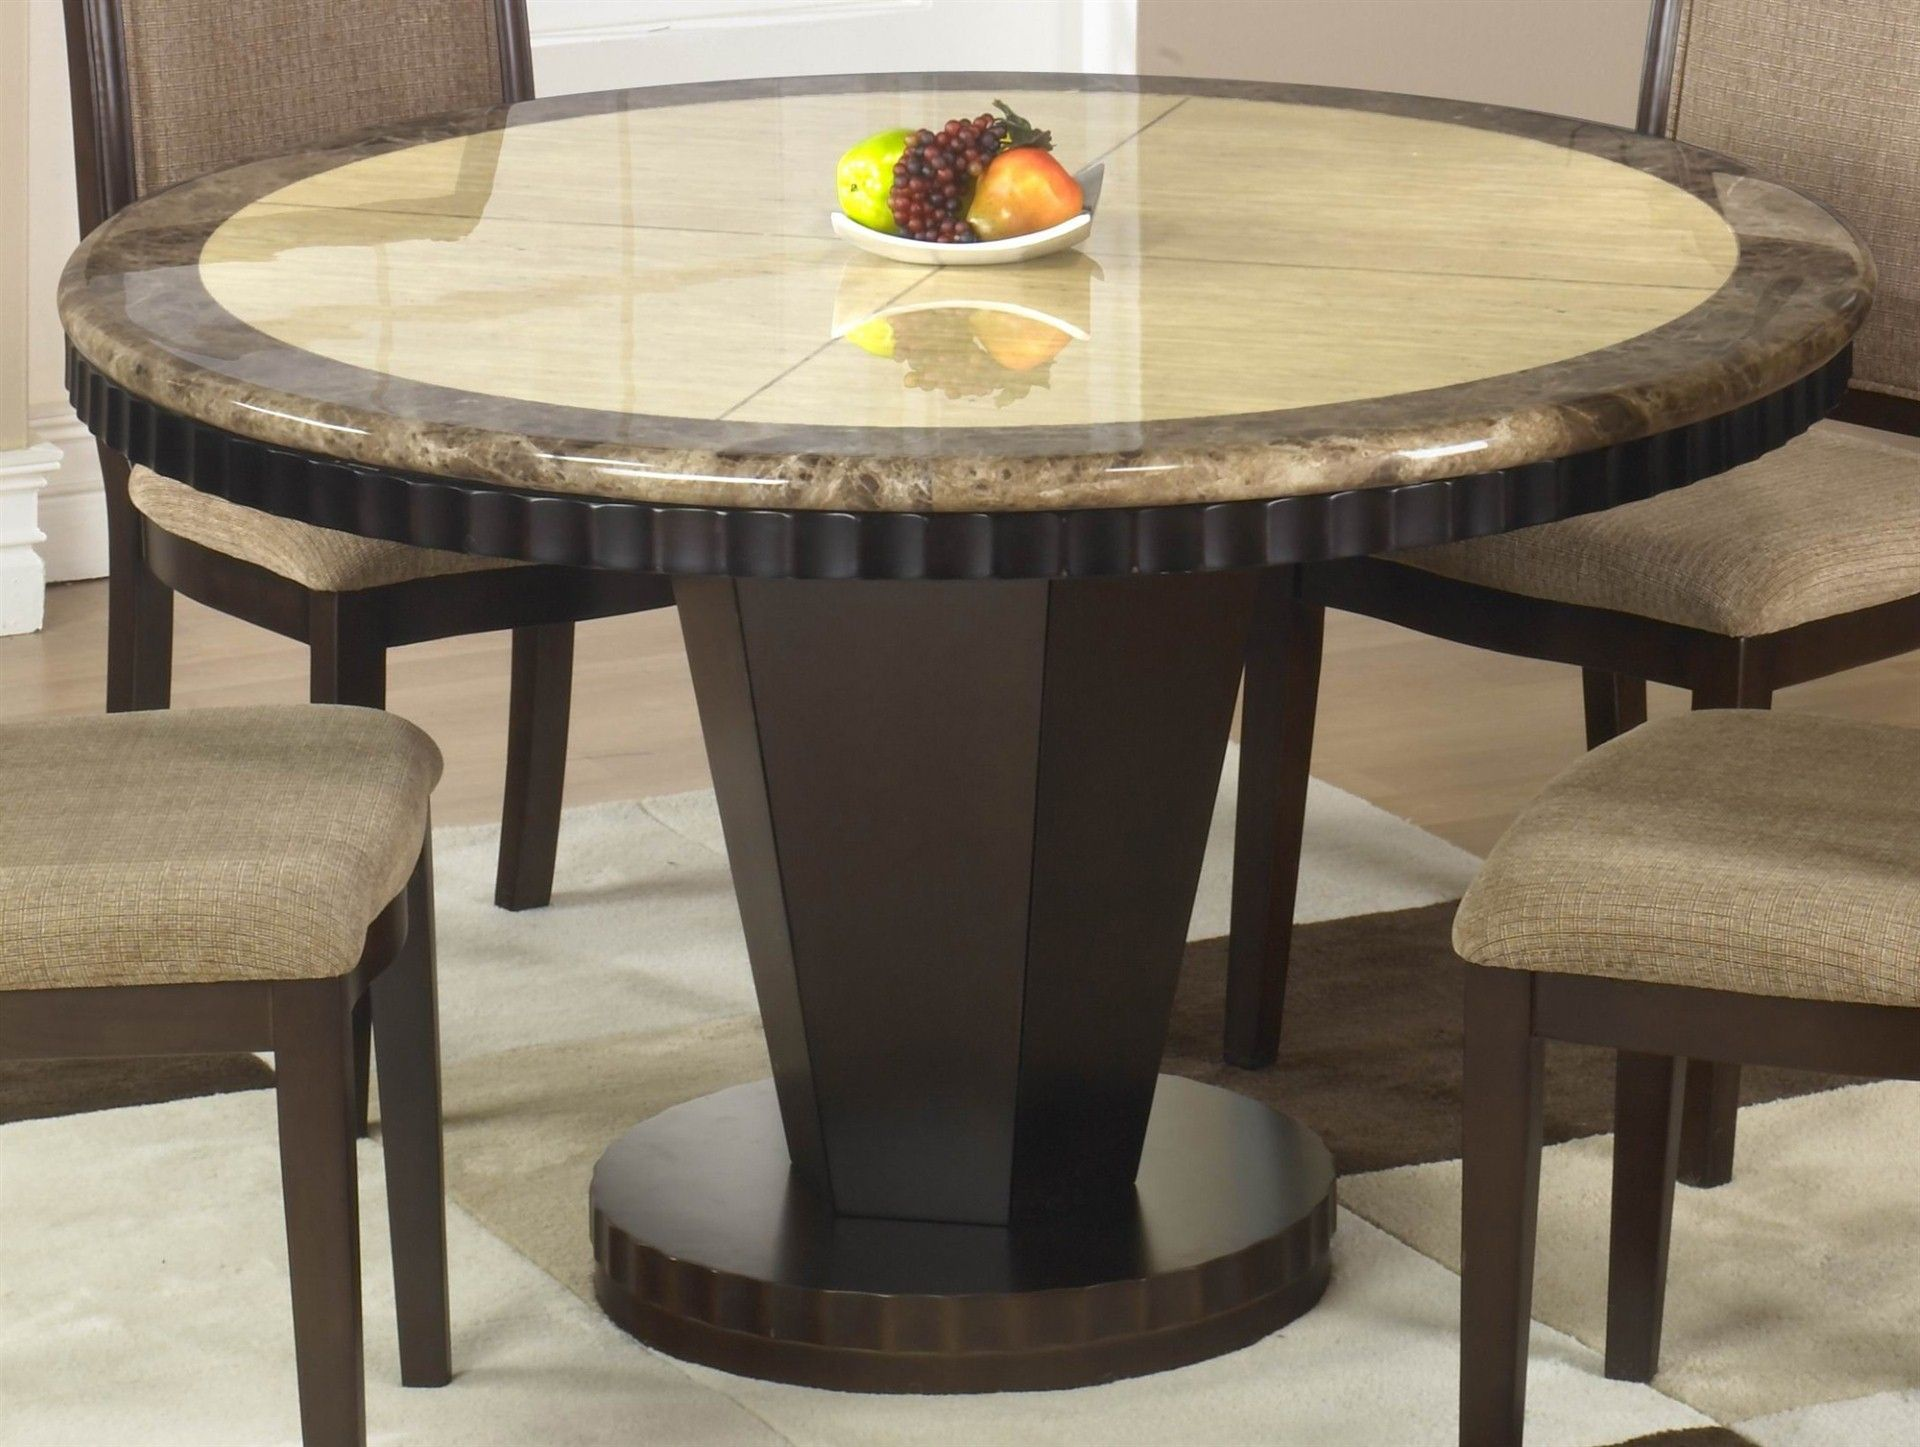 table fritz a top jacobsen design been has completely white marble of and pedestal hansen the with expression en gives arne revitalized new classic changes